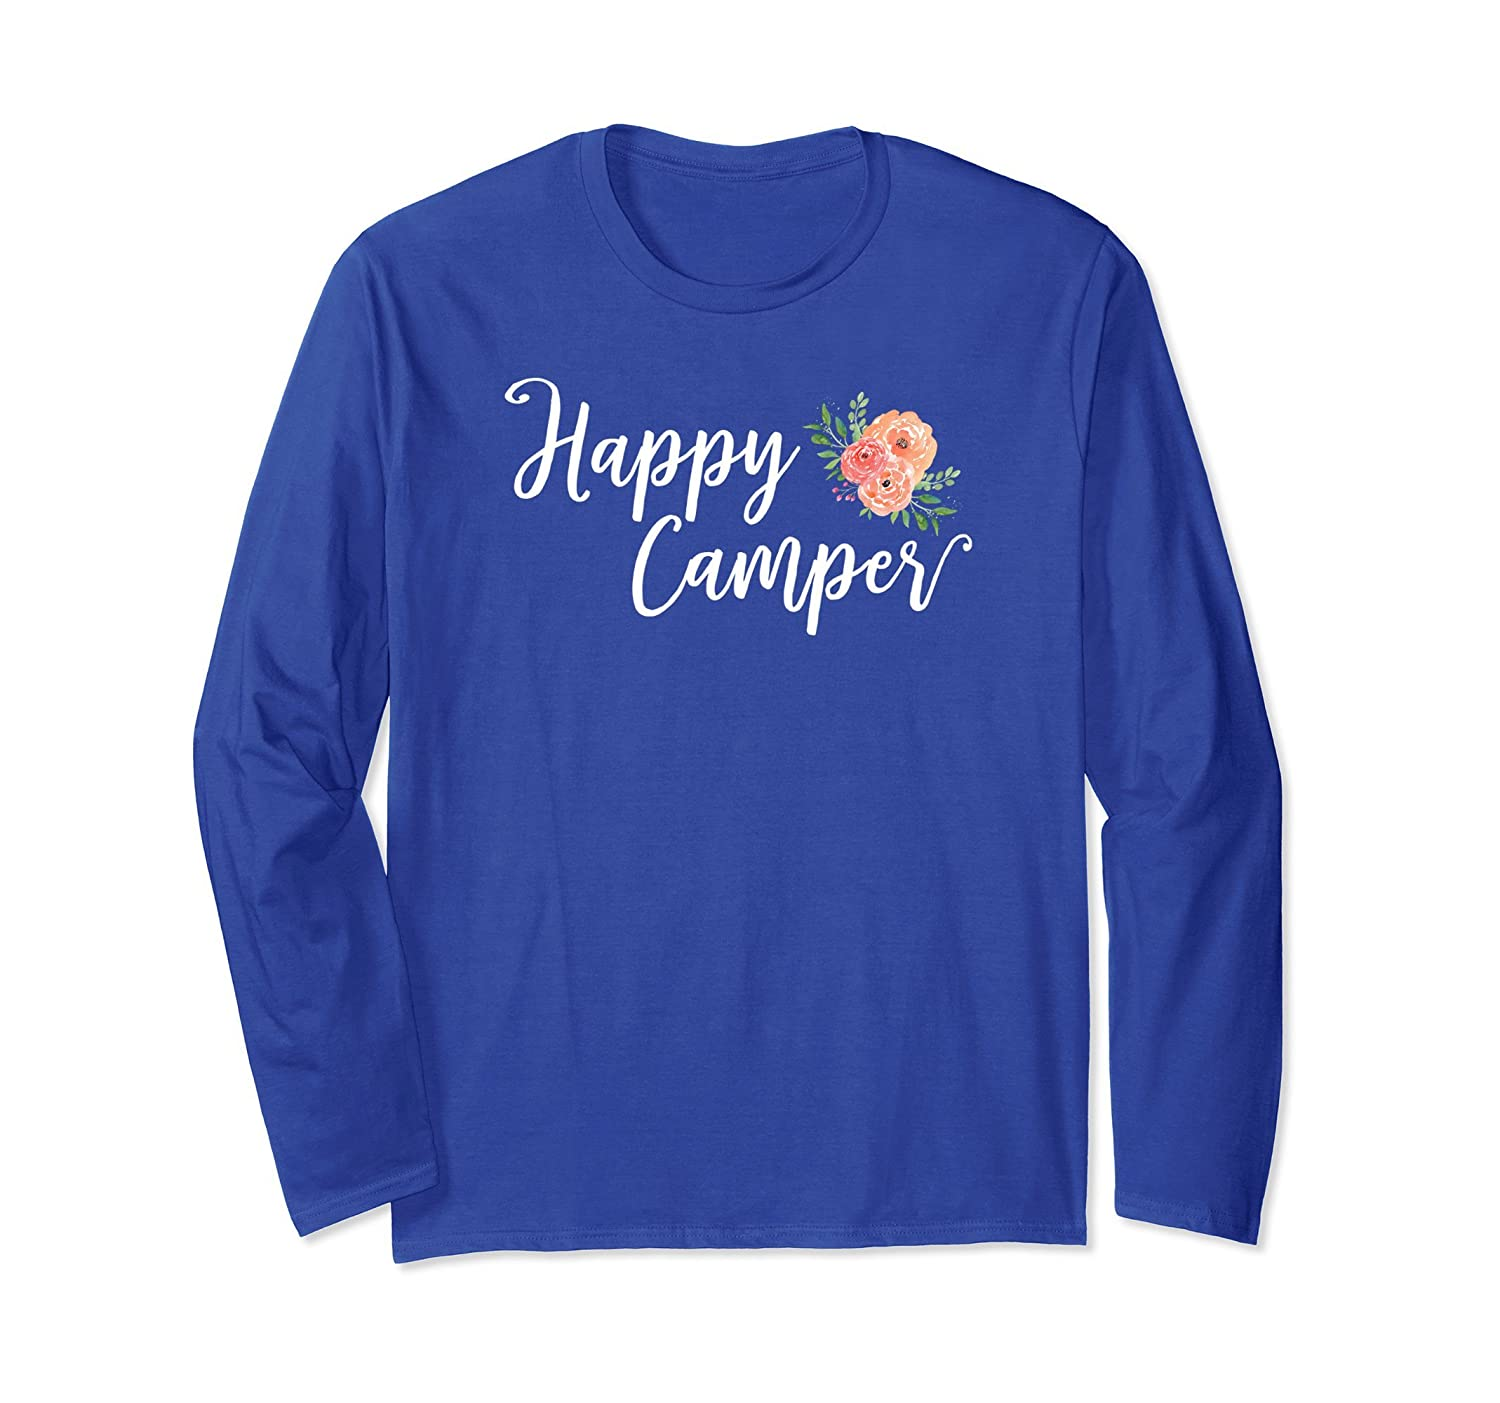 Adorable Floral Happy Camper Vacation Shirt For Adventurers-alottee gift